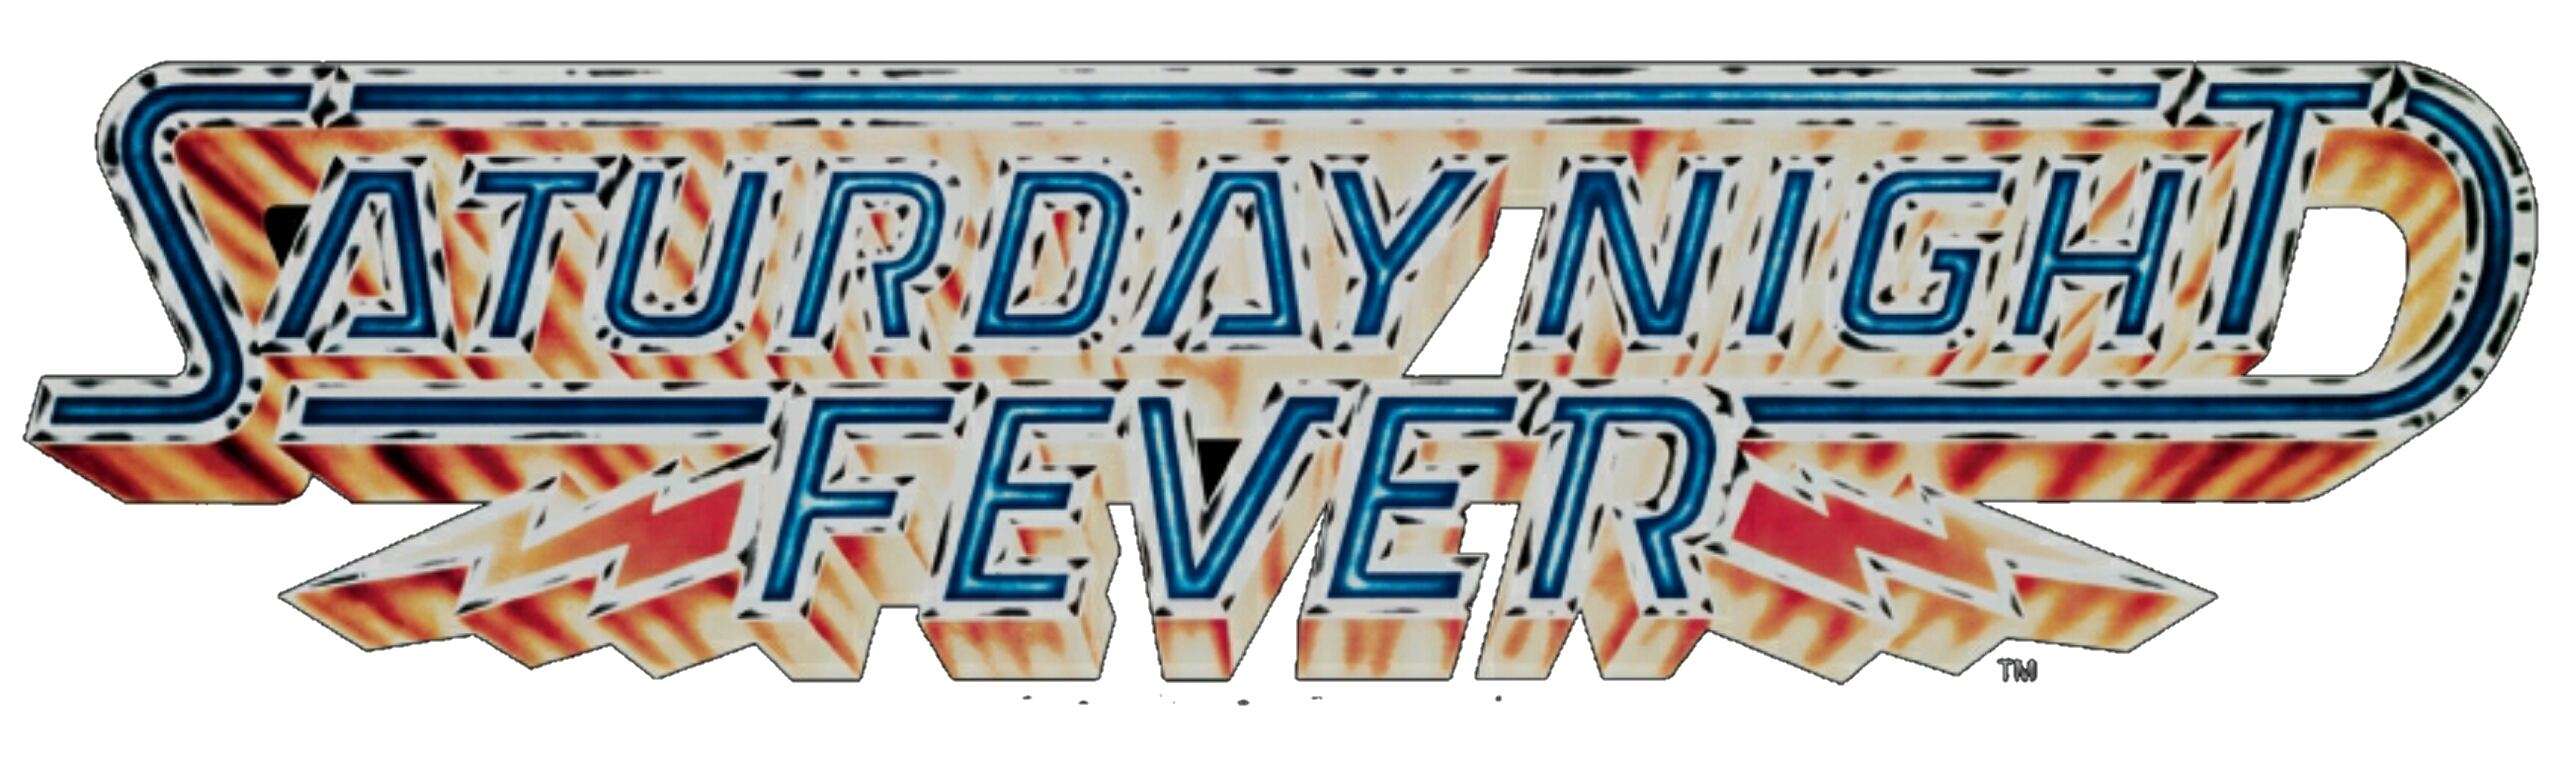 Saturday Night Fever (film)